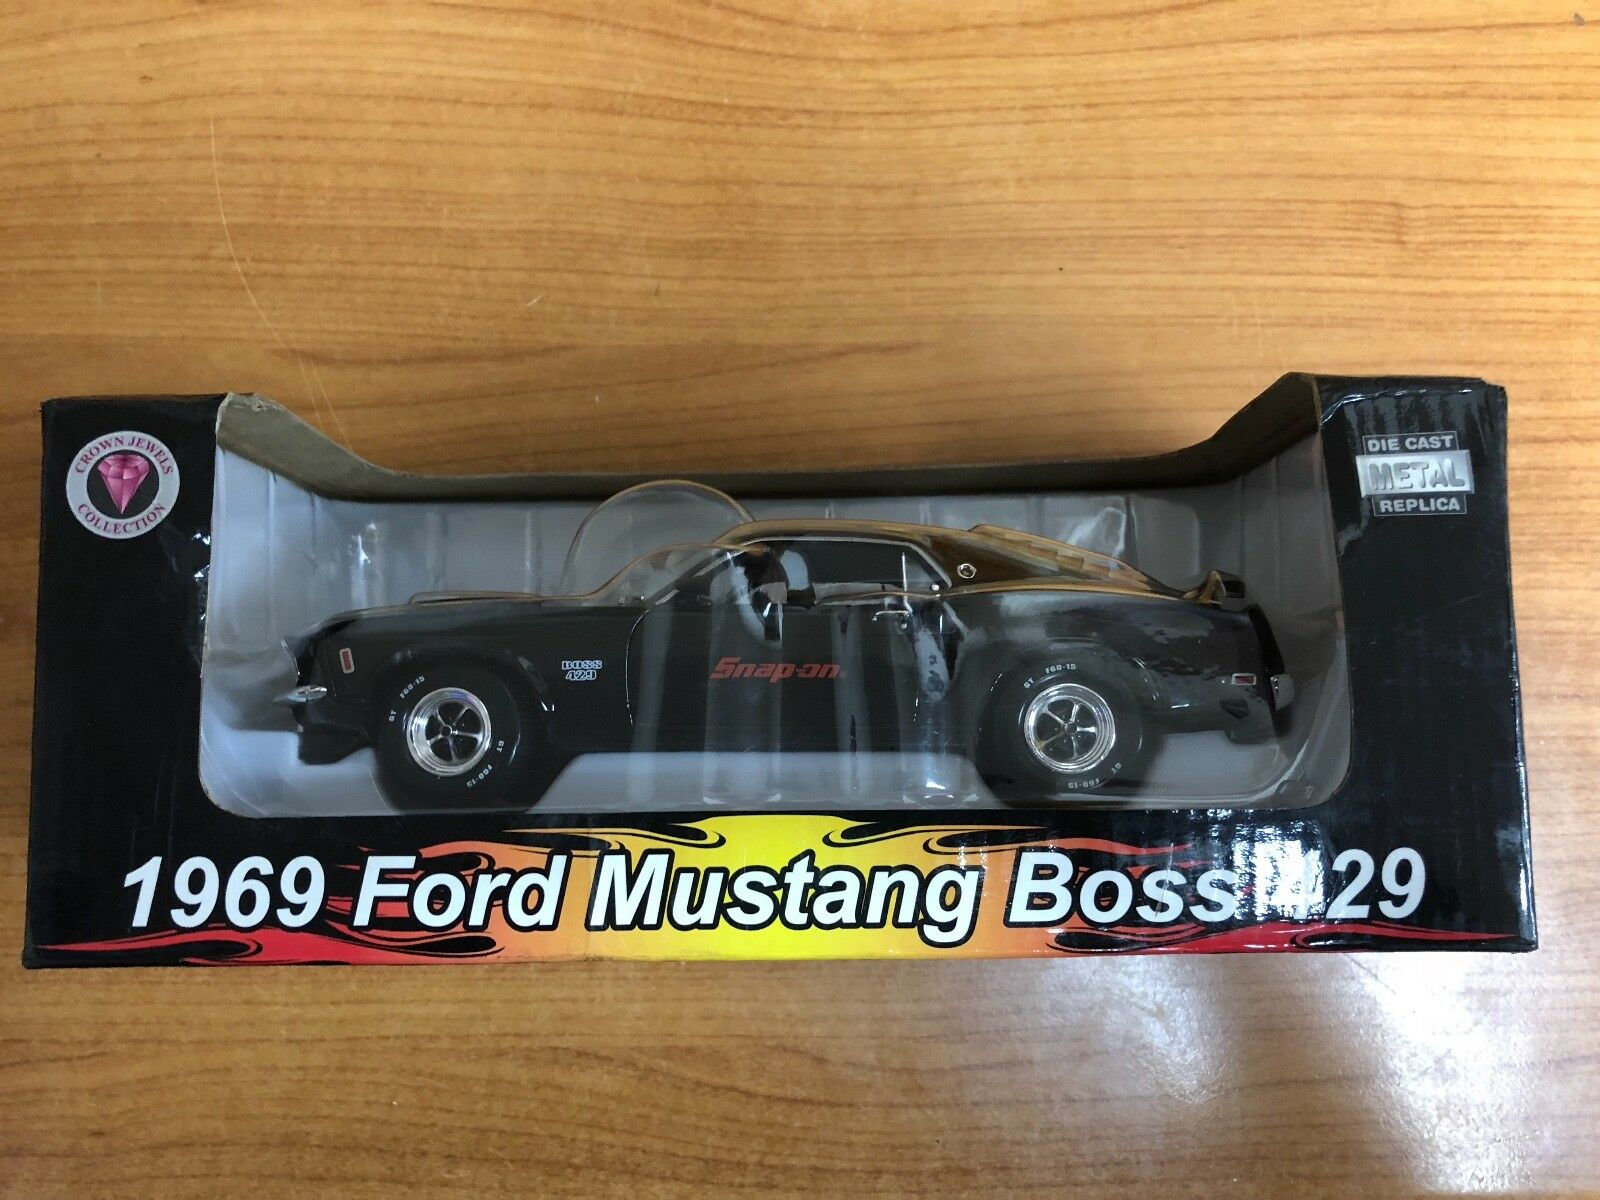 Snap on 1969 Ford Mustang Boss 429 1 24 Scale Die Cast